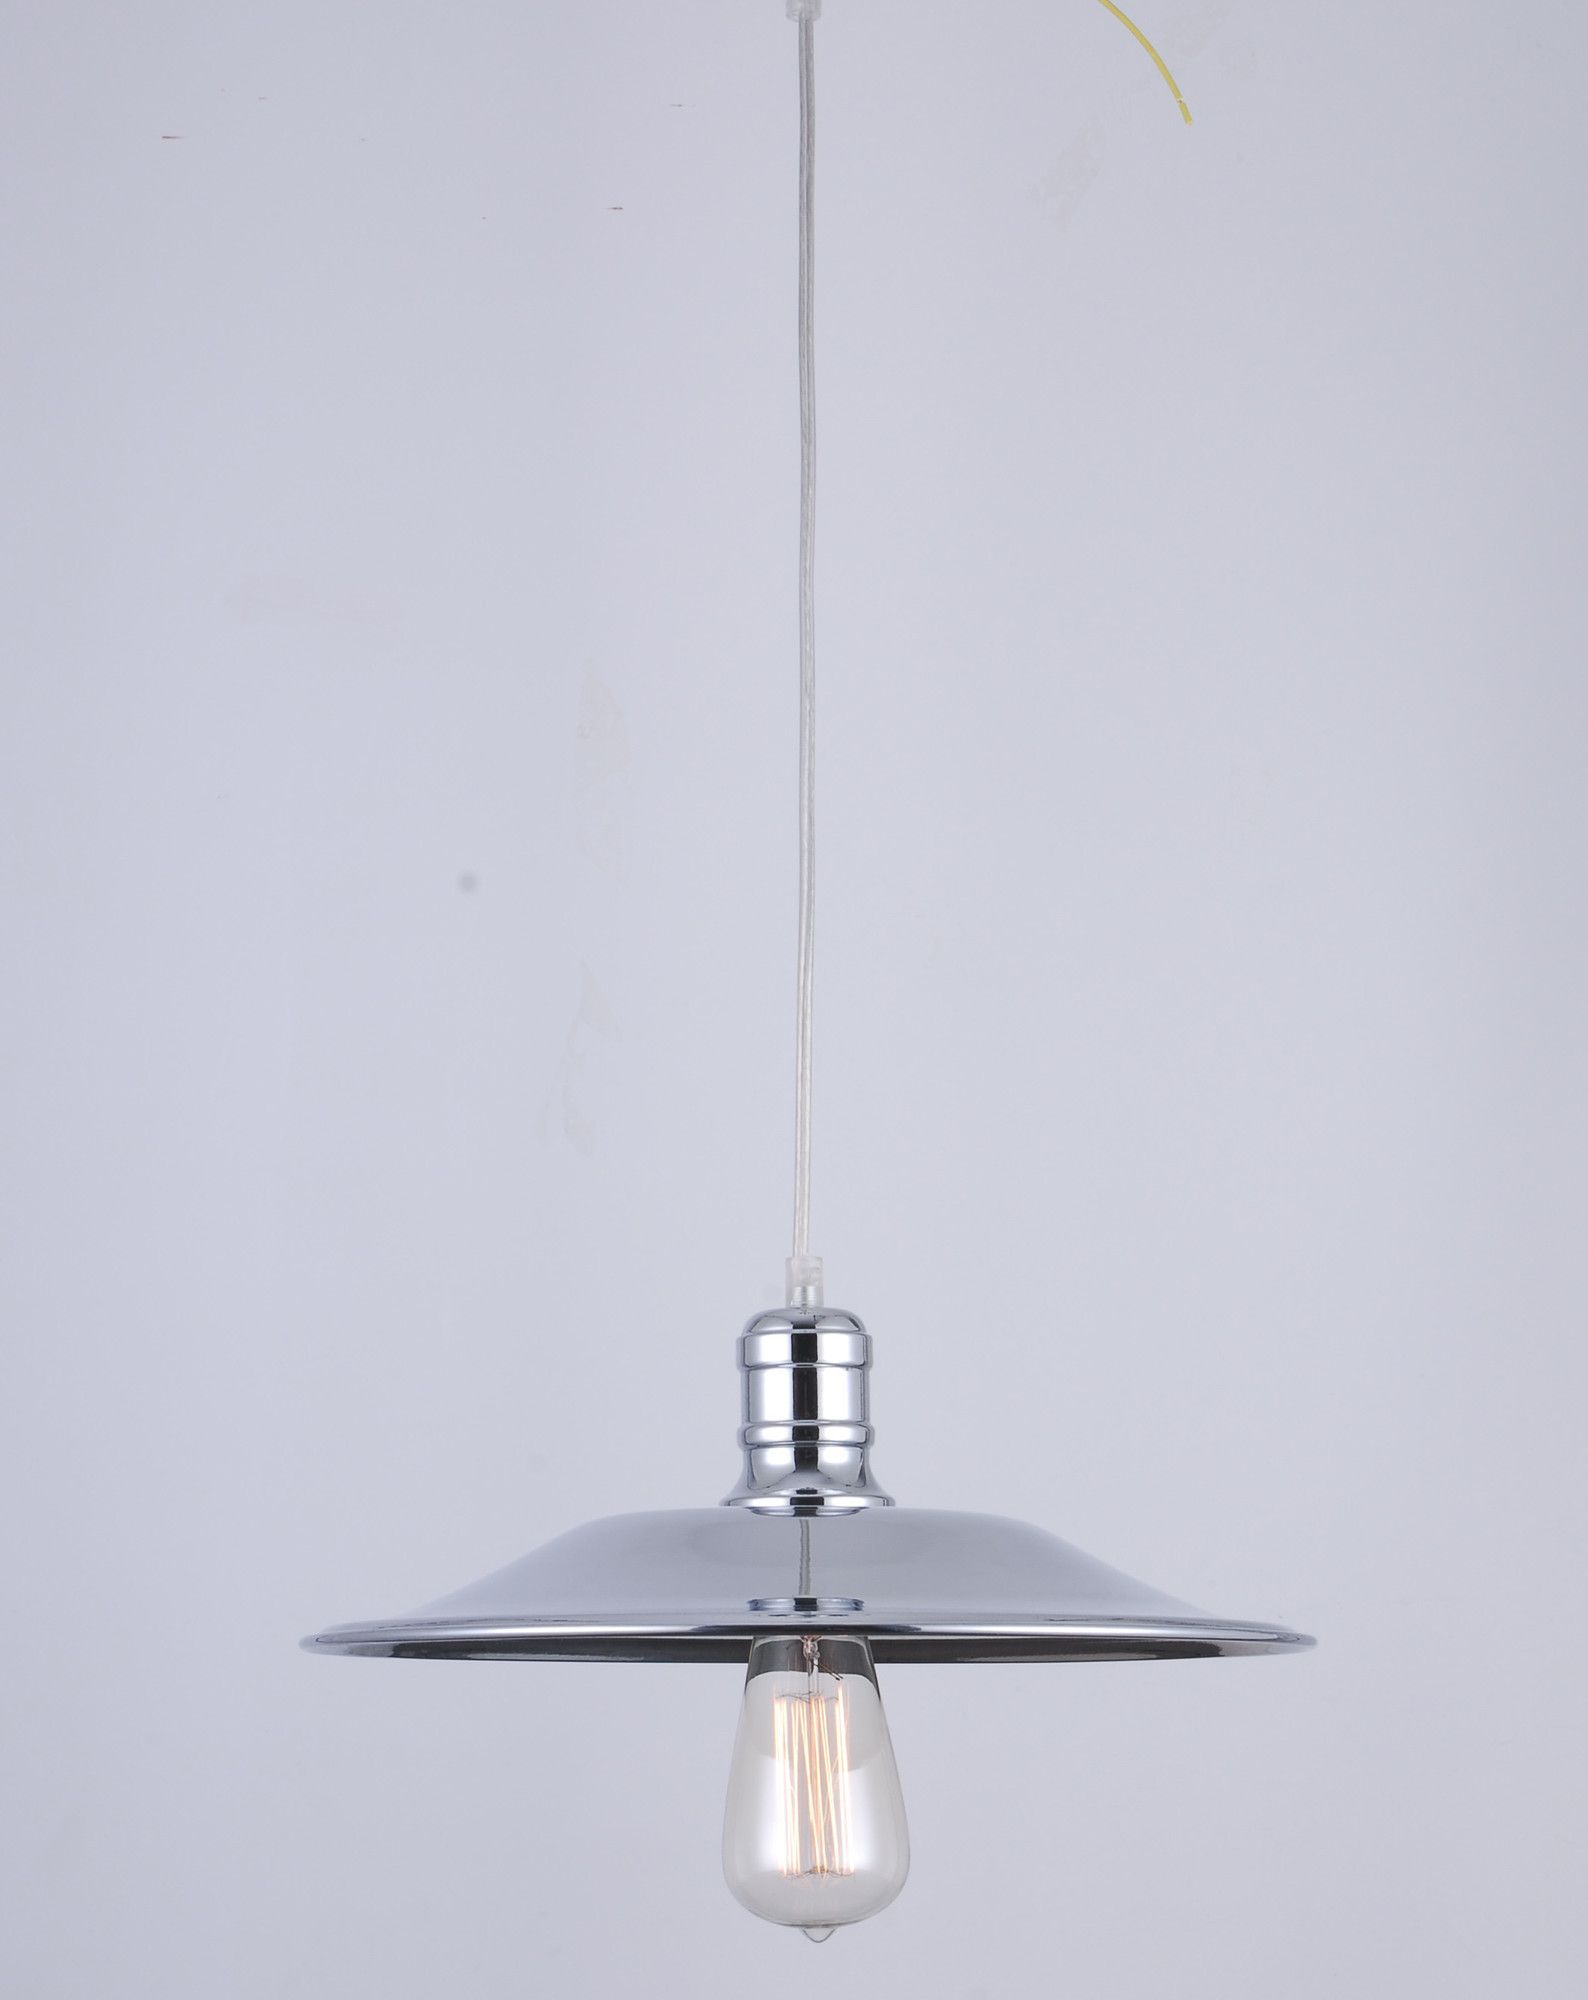 Kitchen pendants x 3 114 each temple webster vintage industrial vintage industrial dish shade pendant light by emporium oggetti get it now or find more tiffany emporium ceiling fixtures at temple webster aloadofball Choice Image